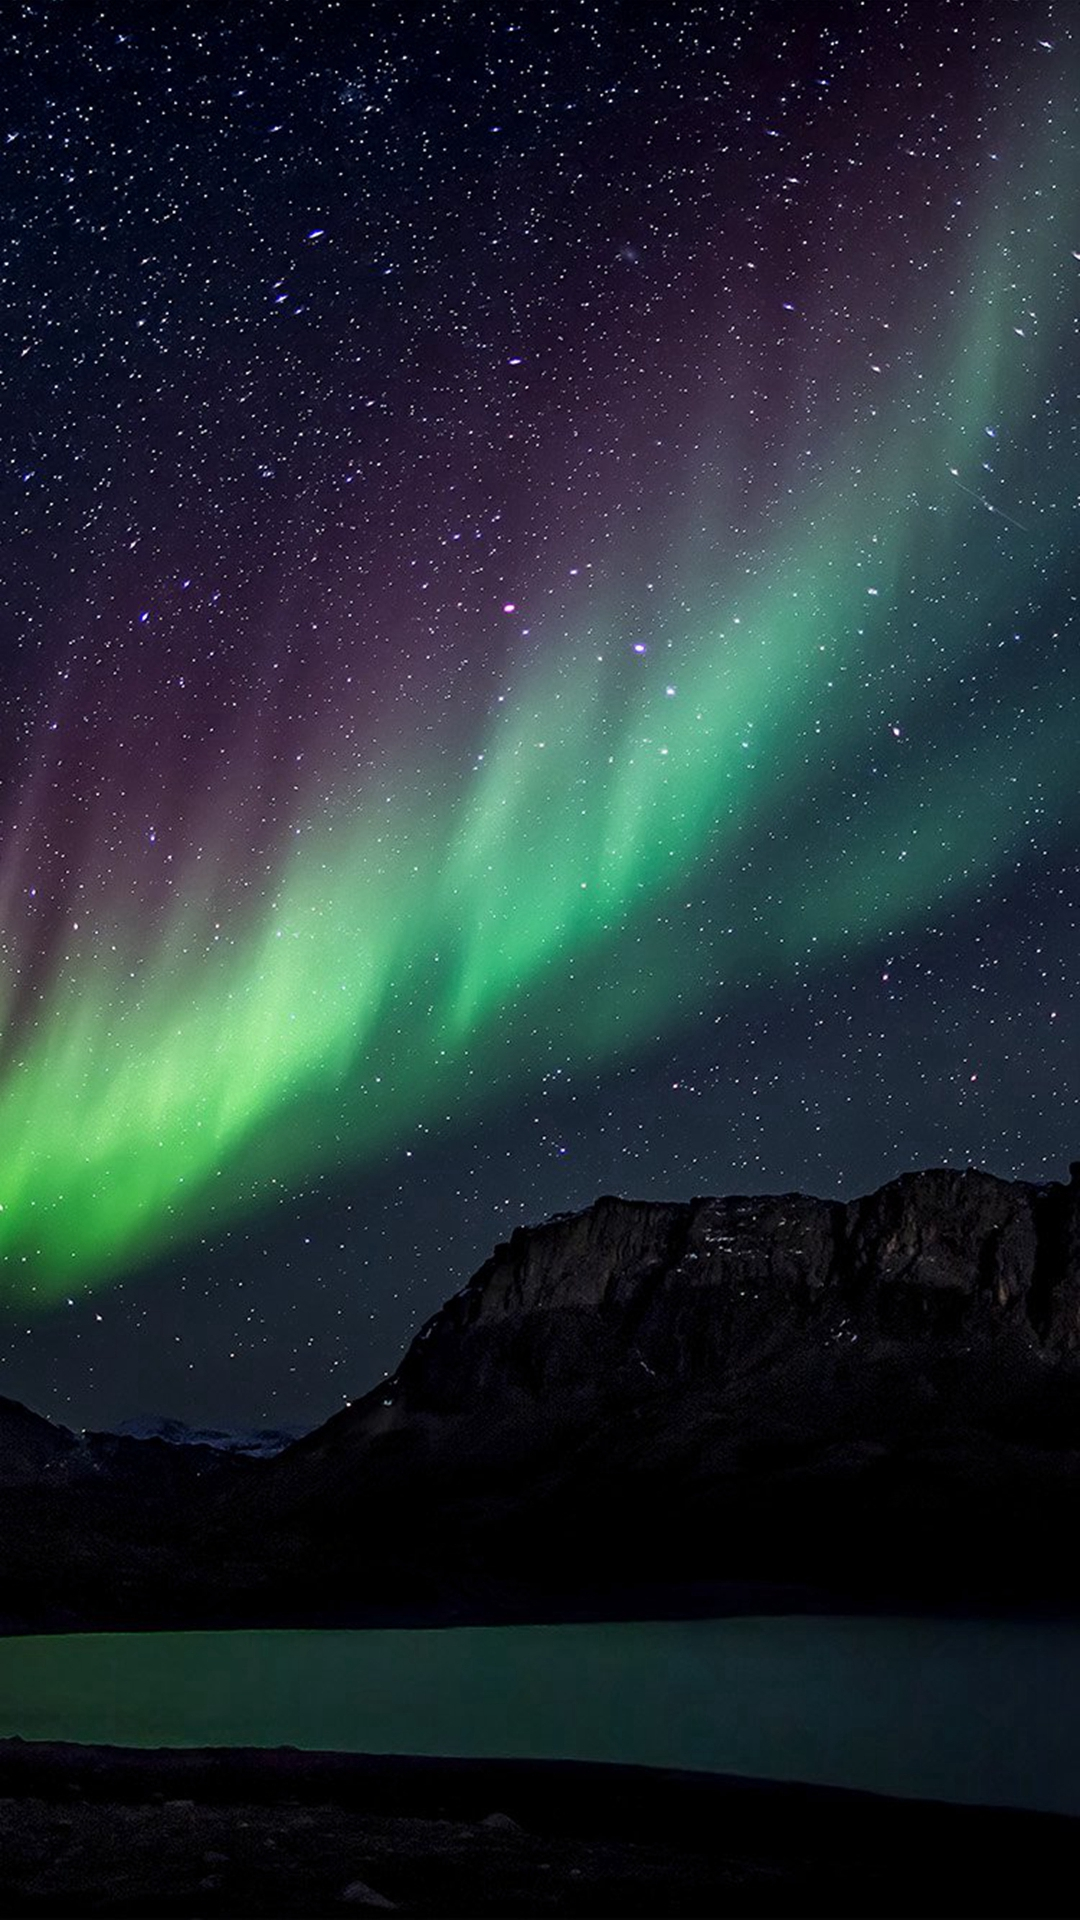 Aurora-Night-Sky-Mountain-Space-Nature-iPhone-wallpaper-wp3003371